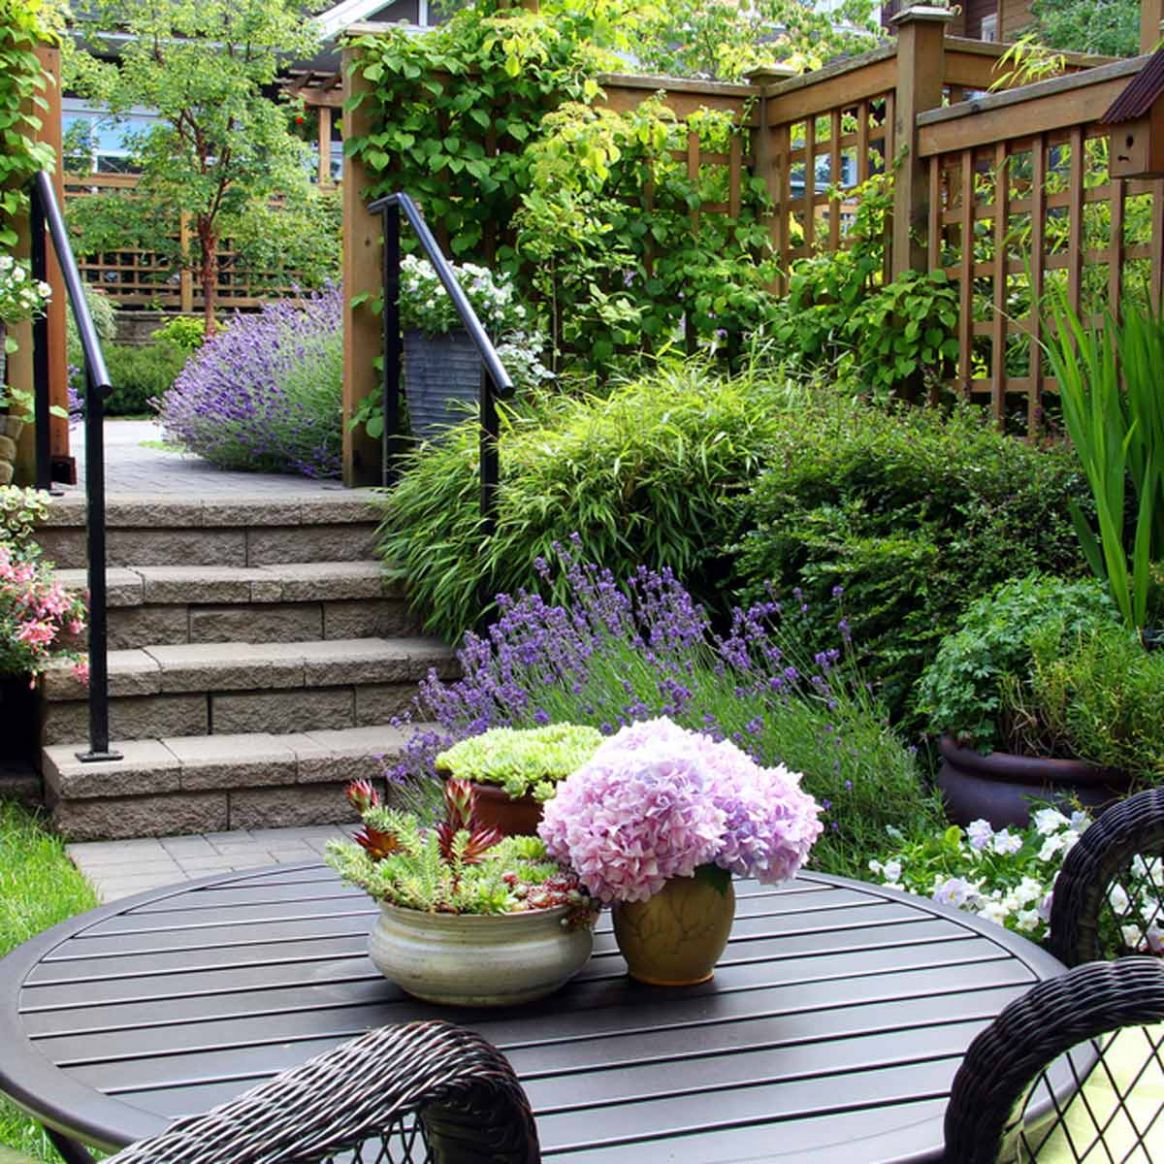 12 Small Yard Landscaping Ideas to Impress | Family Handyman - garden ideas for small areas